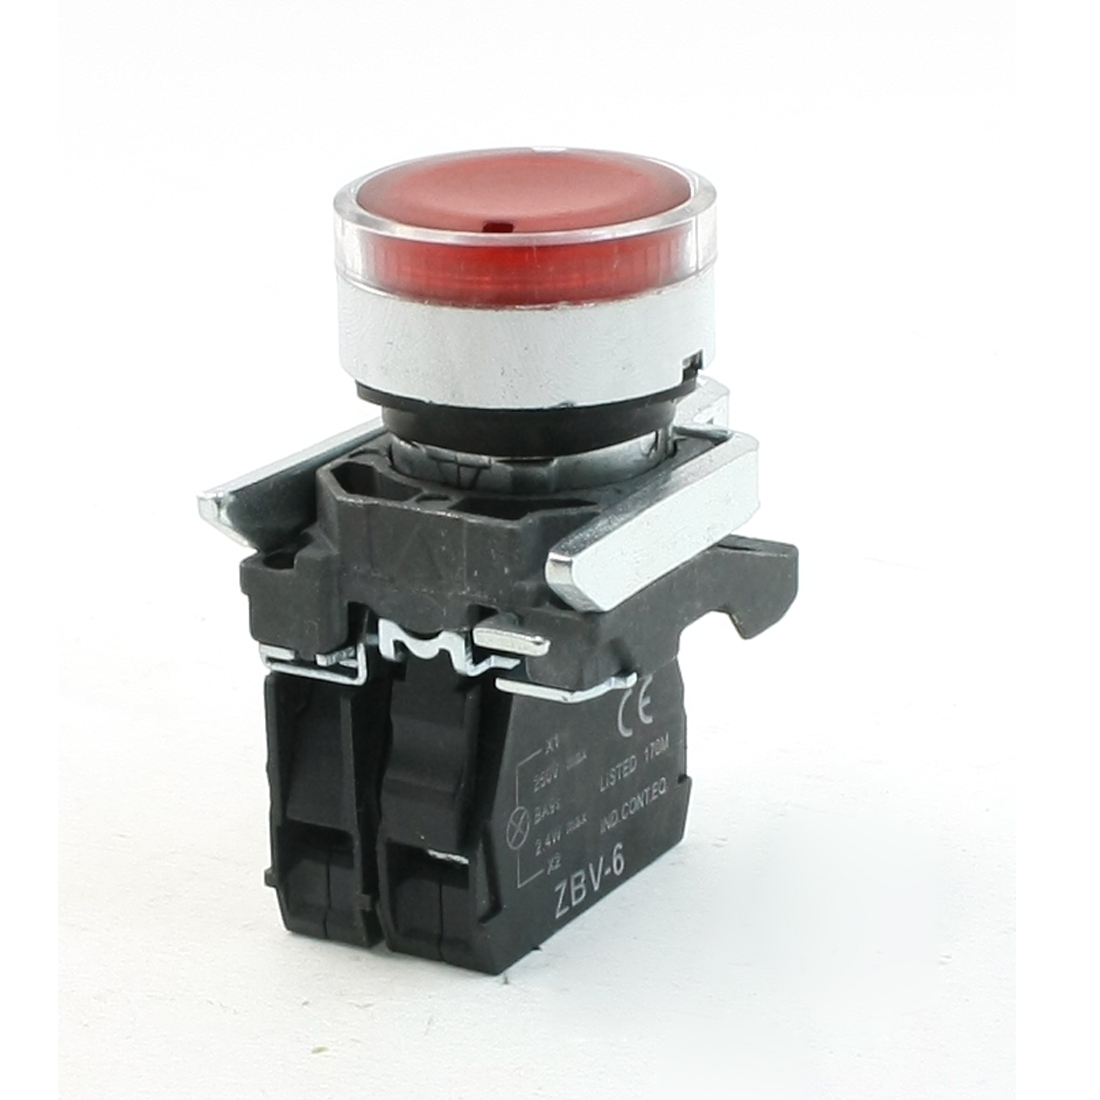 DPST 4 Screw Terminals Momentary Red Flat Push Button Switch